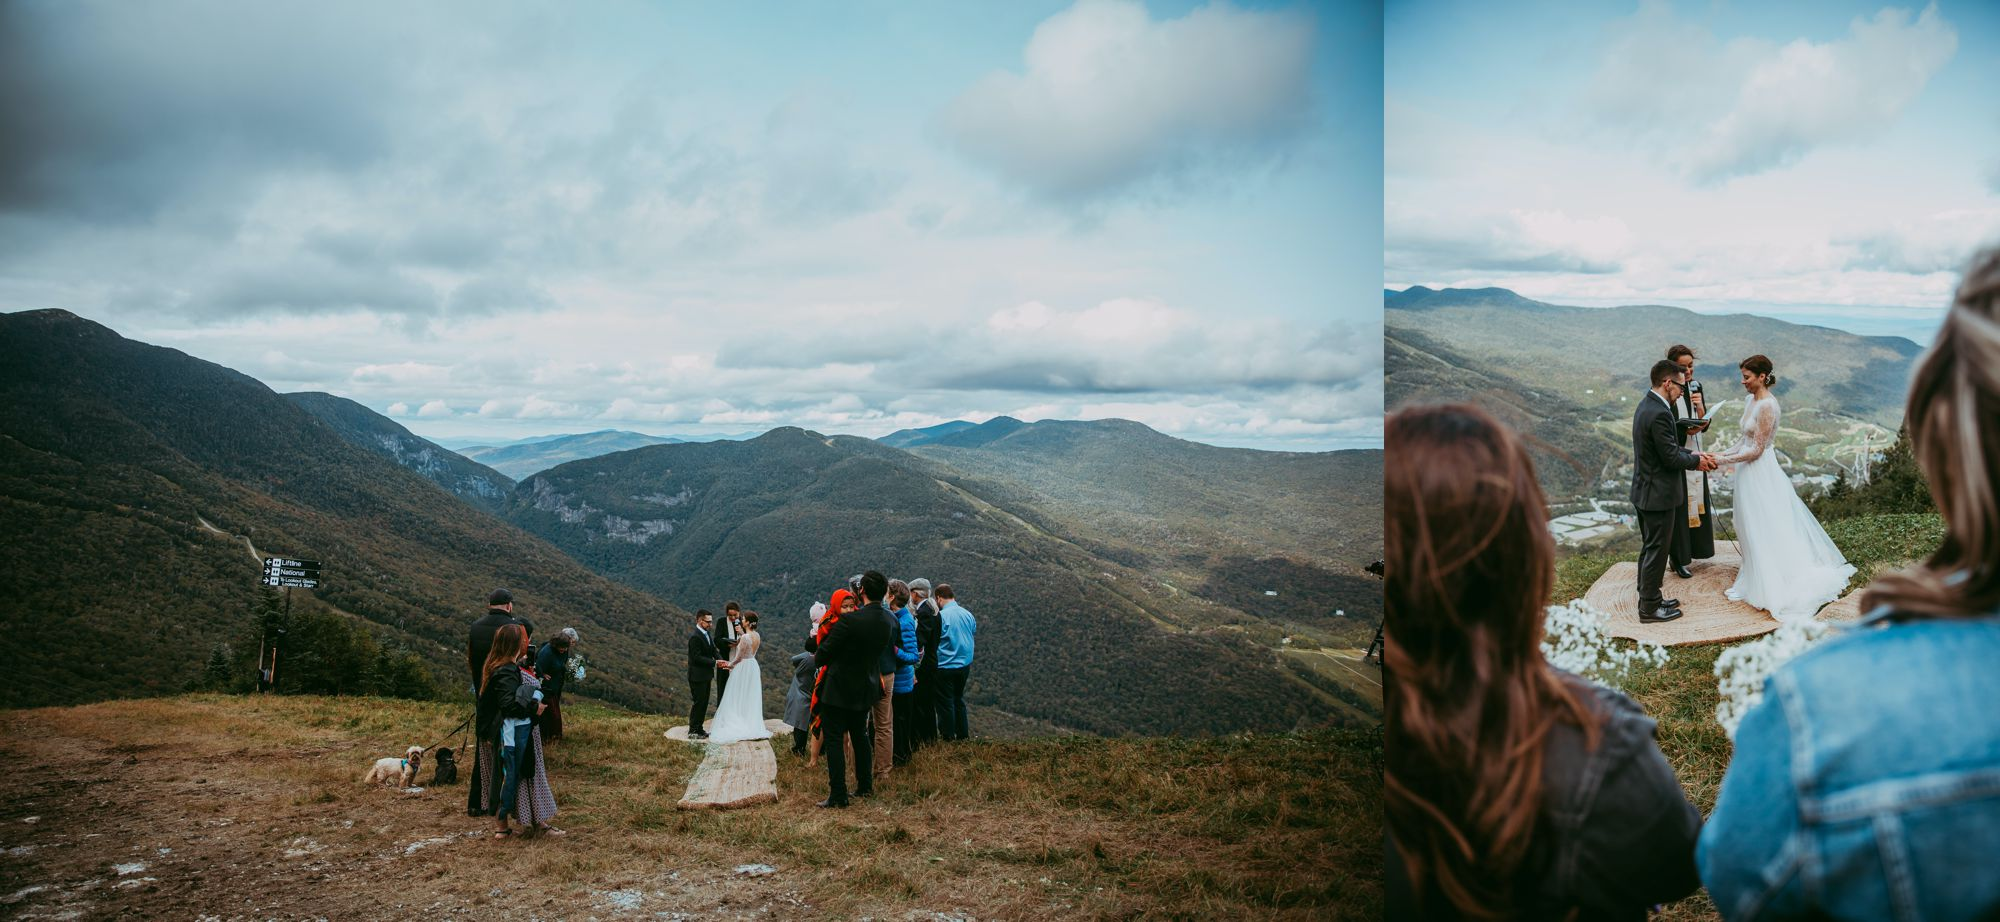 Mt Mansfield Ceremony Outdoors Overview